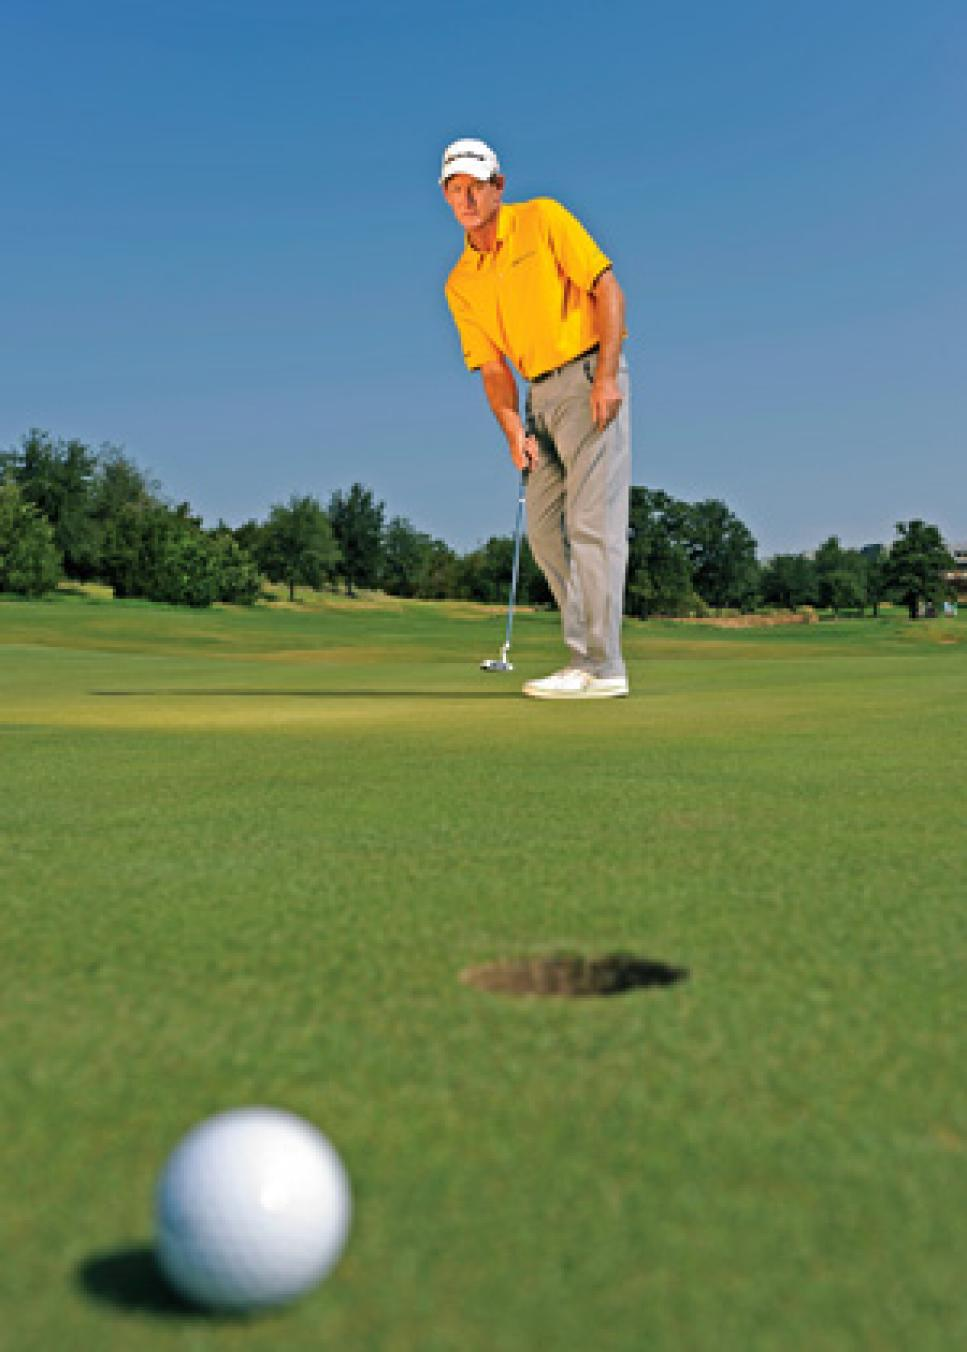 instruction-2012-01-inar01_haney_putting.jpg